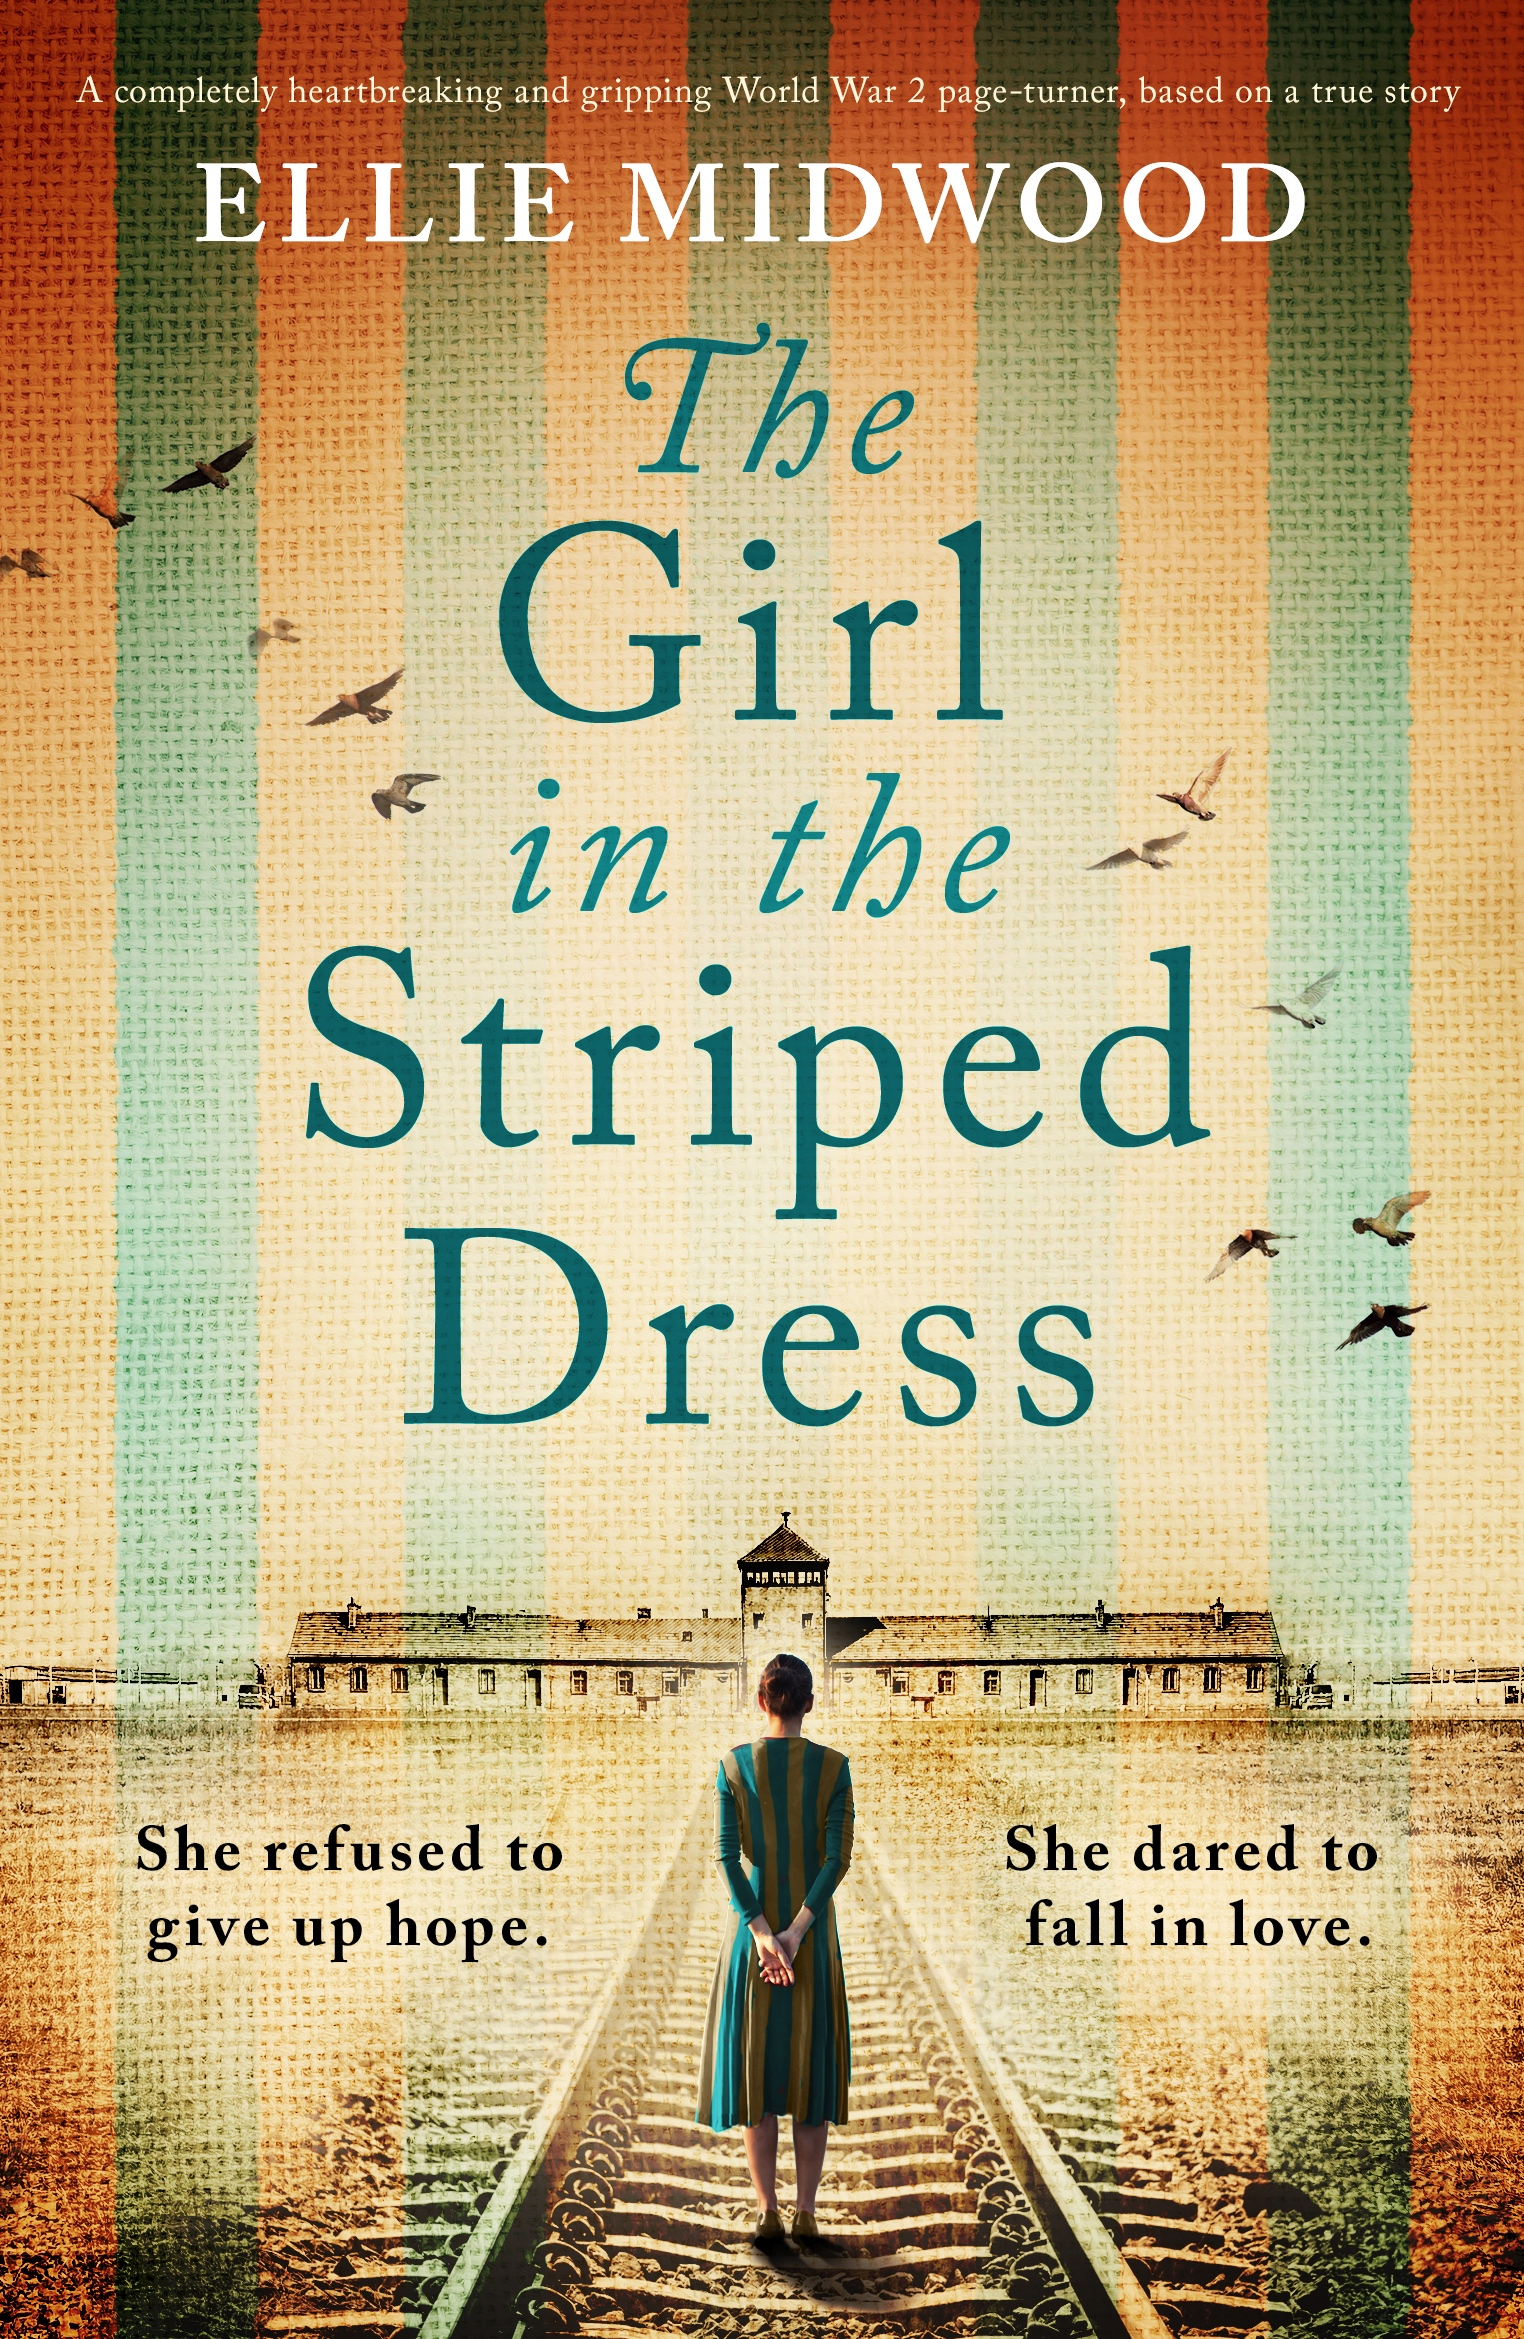 The Girl in the Striped Dress book cover